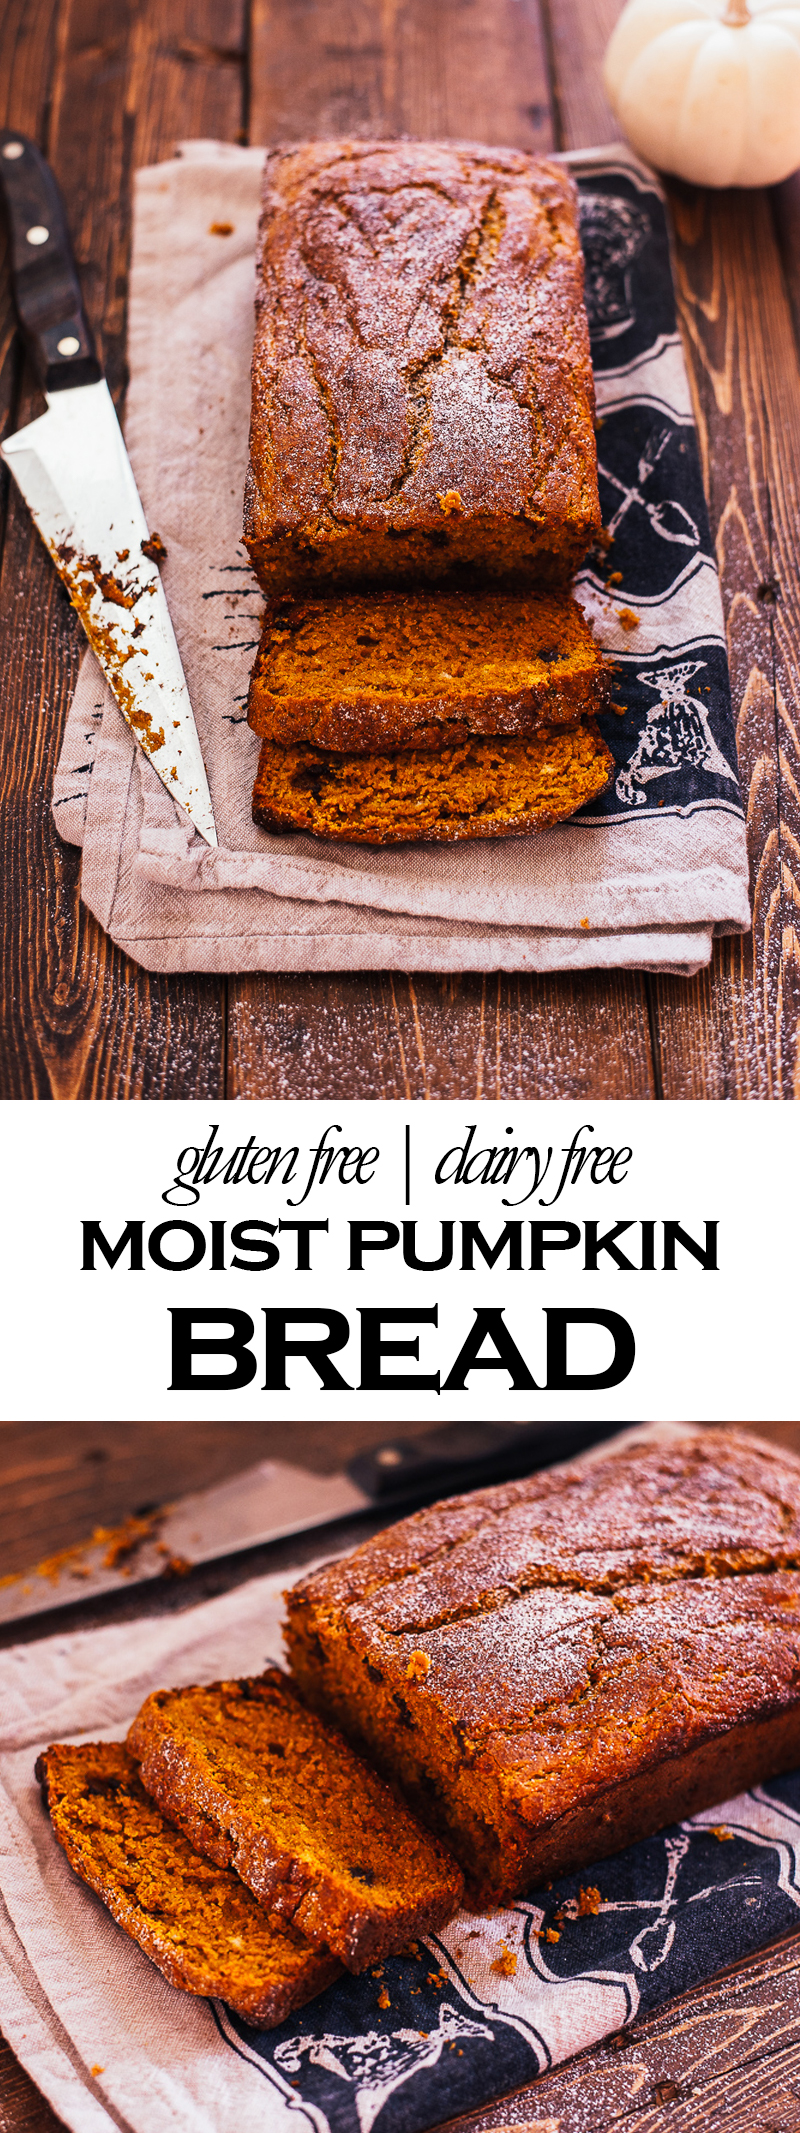 This dairy free and gluten-free pumpkin bread is sure to satisfy all your fall cravings! Soft, moist, fluffy, and delicious, no one will know that this is gluten-free! gluten free bread | gluten free pumpkin bread | dairy free bread | dairy free pumpkin bread | fall desserts | fall recipes | gluten free fall recipes